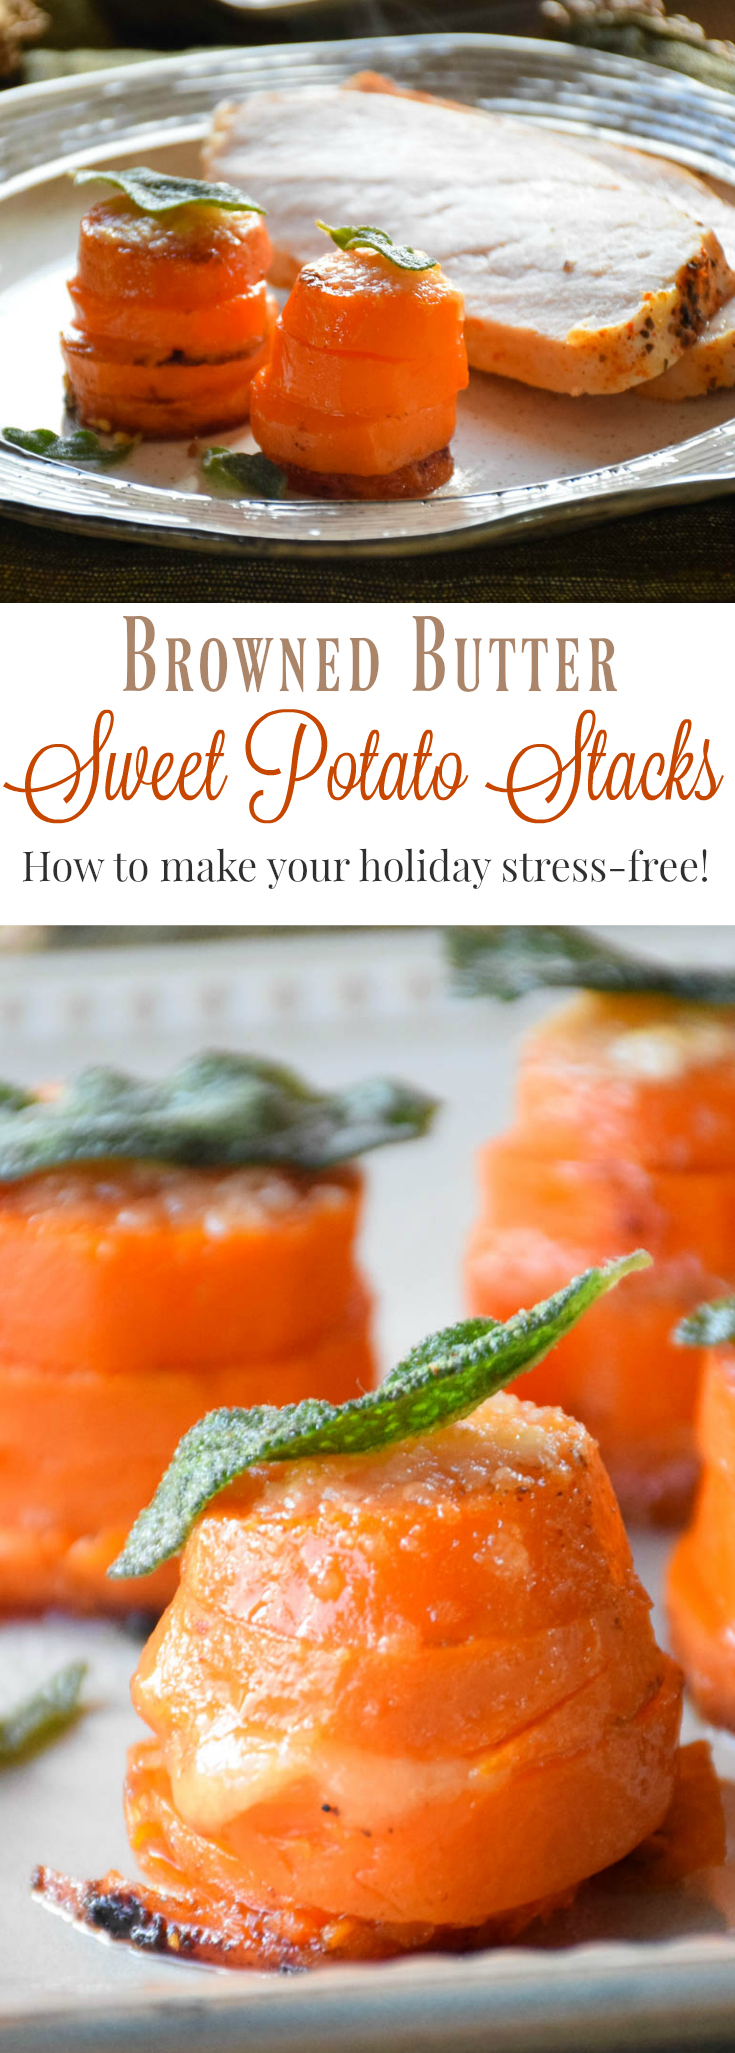 Sweet Potato Stacks Pinterest